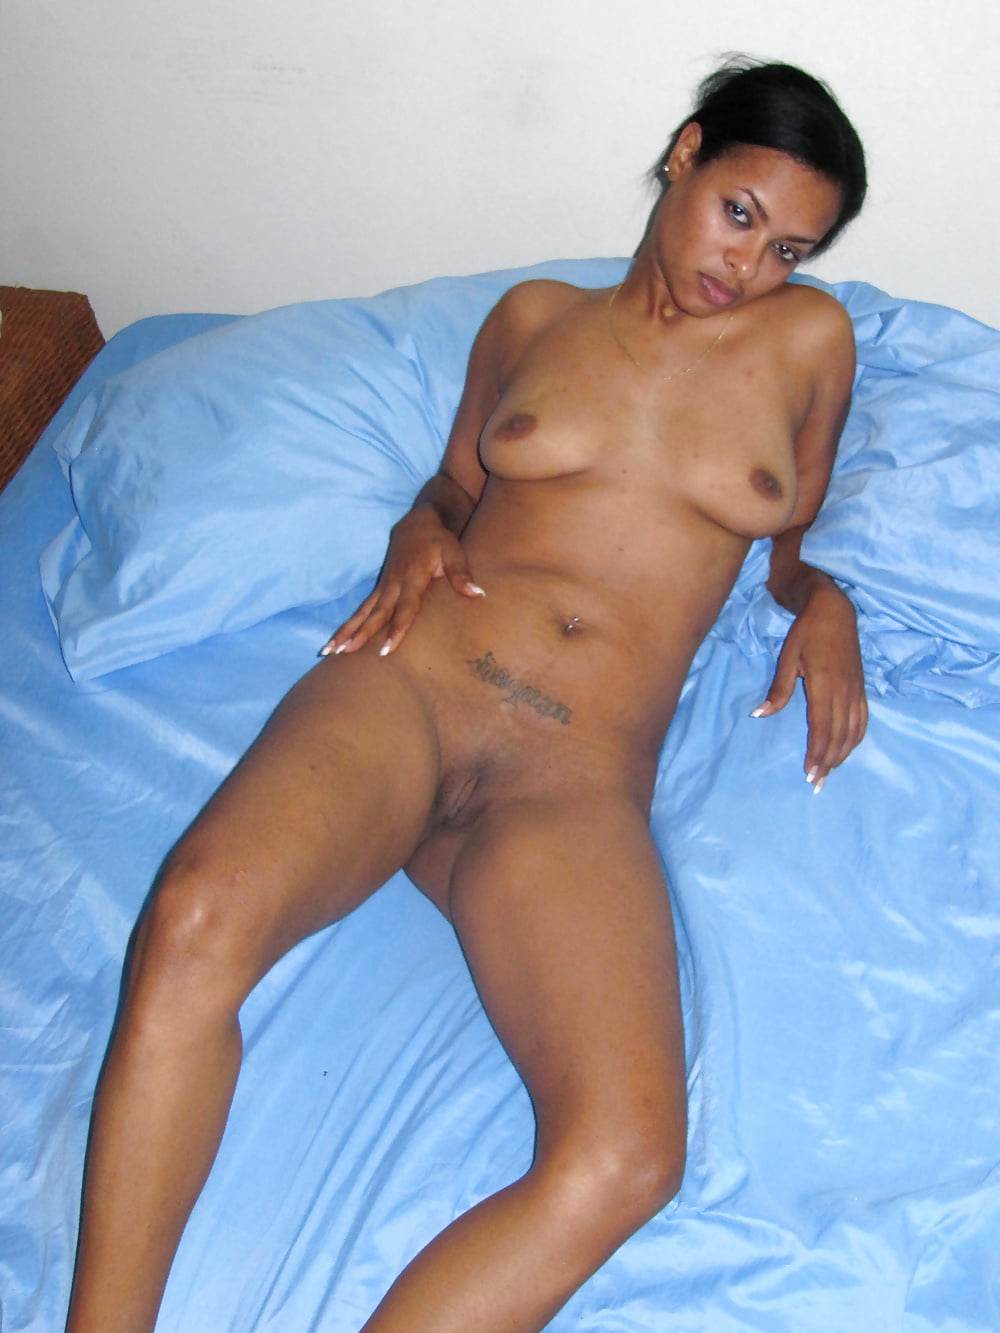 nude-pictures-of-dominican-women-hot-nake-brazil-college